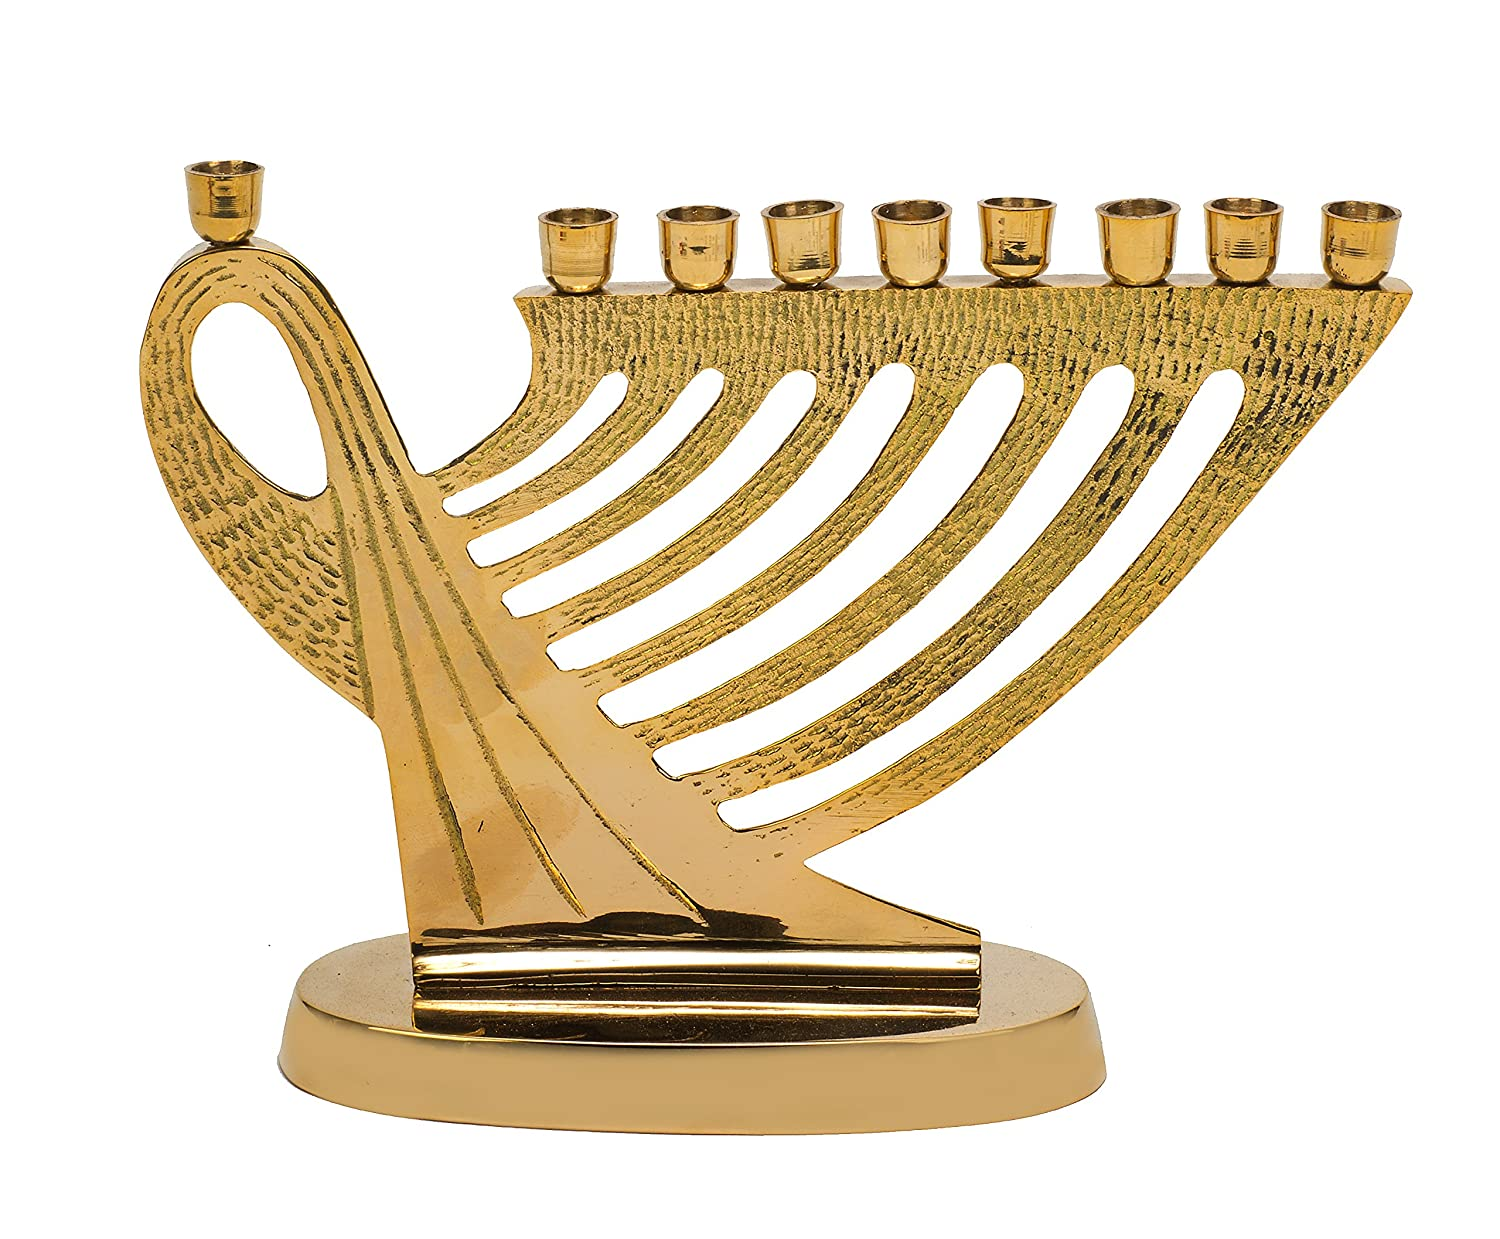 Biedermann & Sons Brass Harp Design Menorah Candle HM80